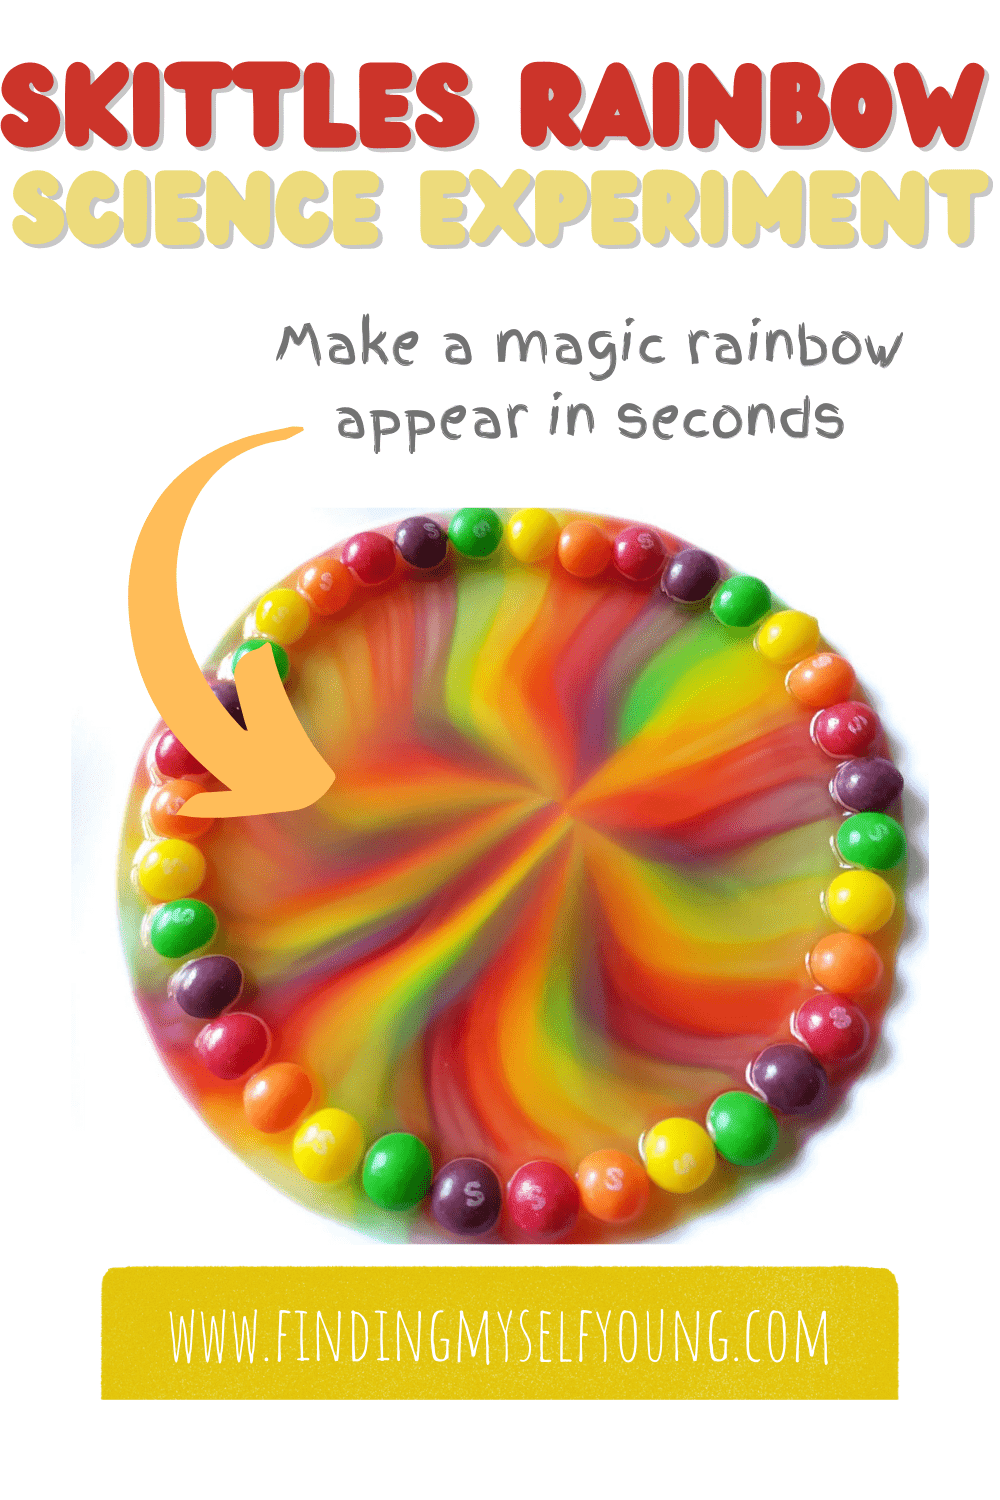 How to make a Skittles rainbow.